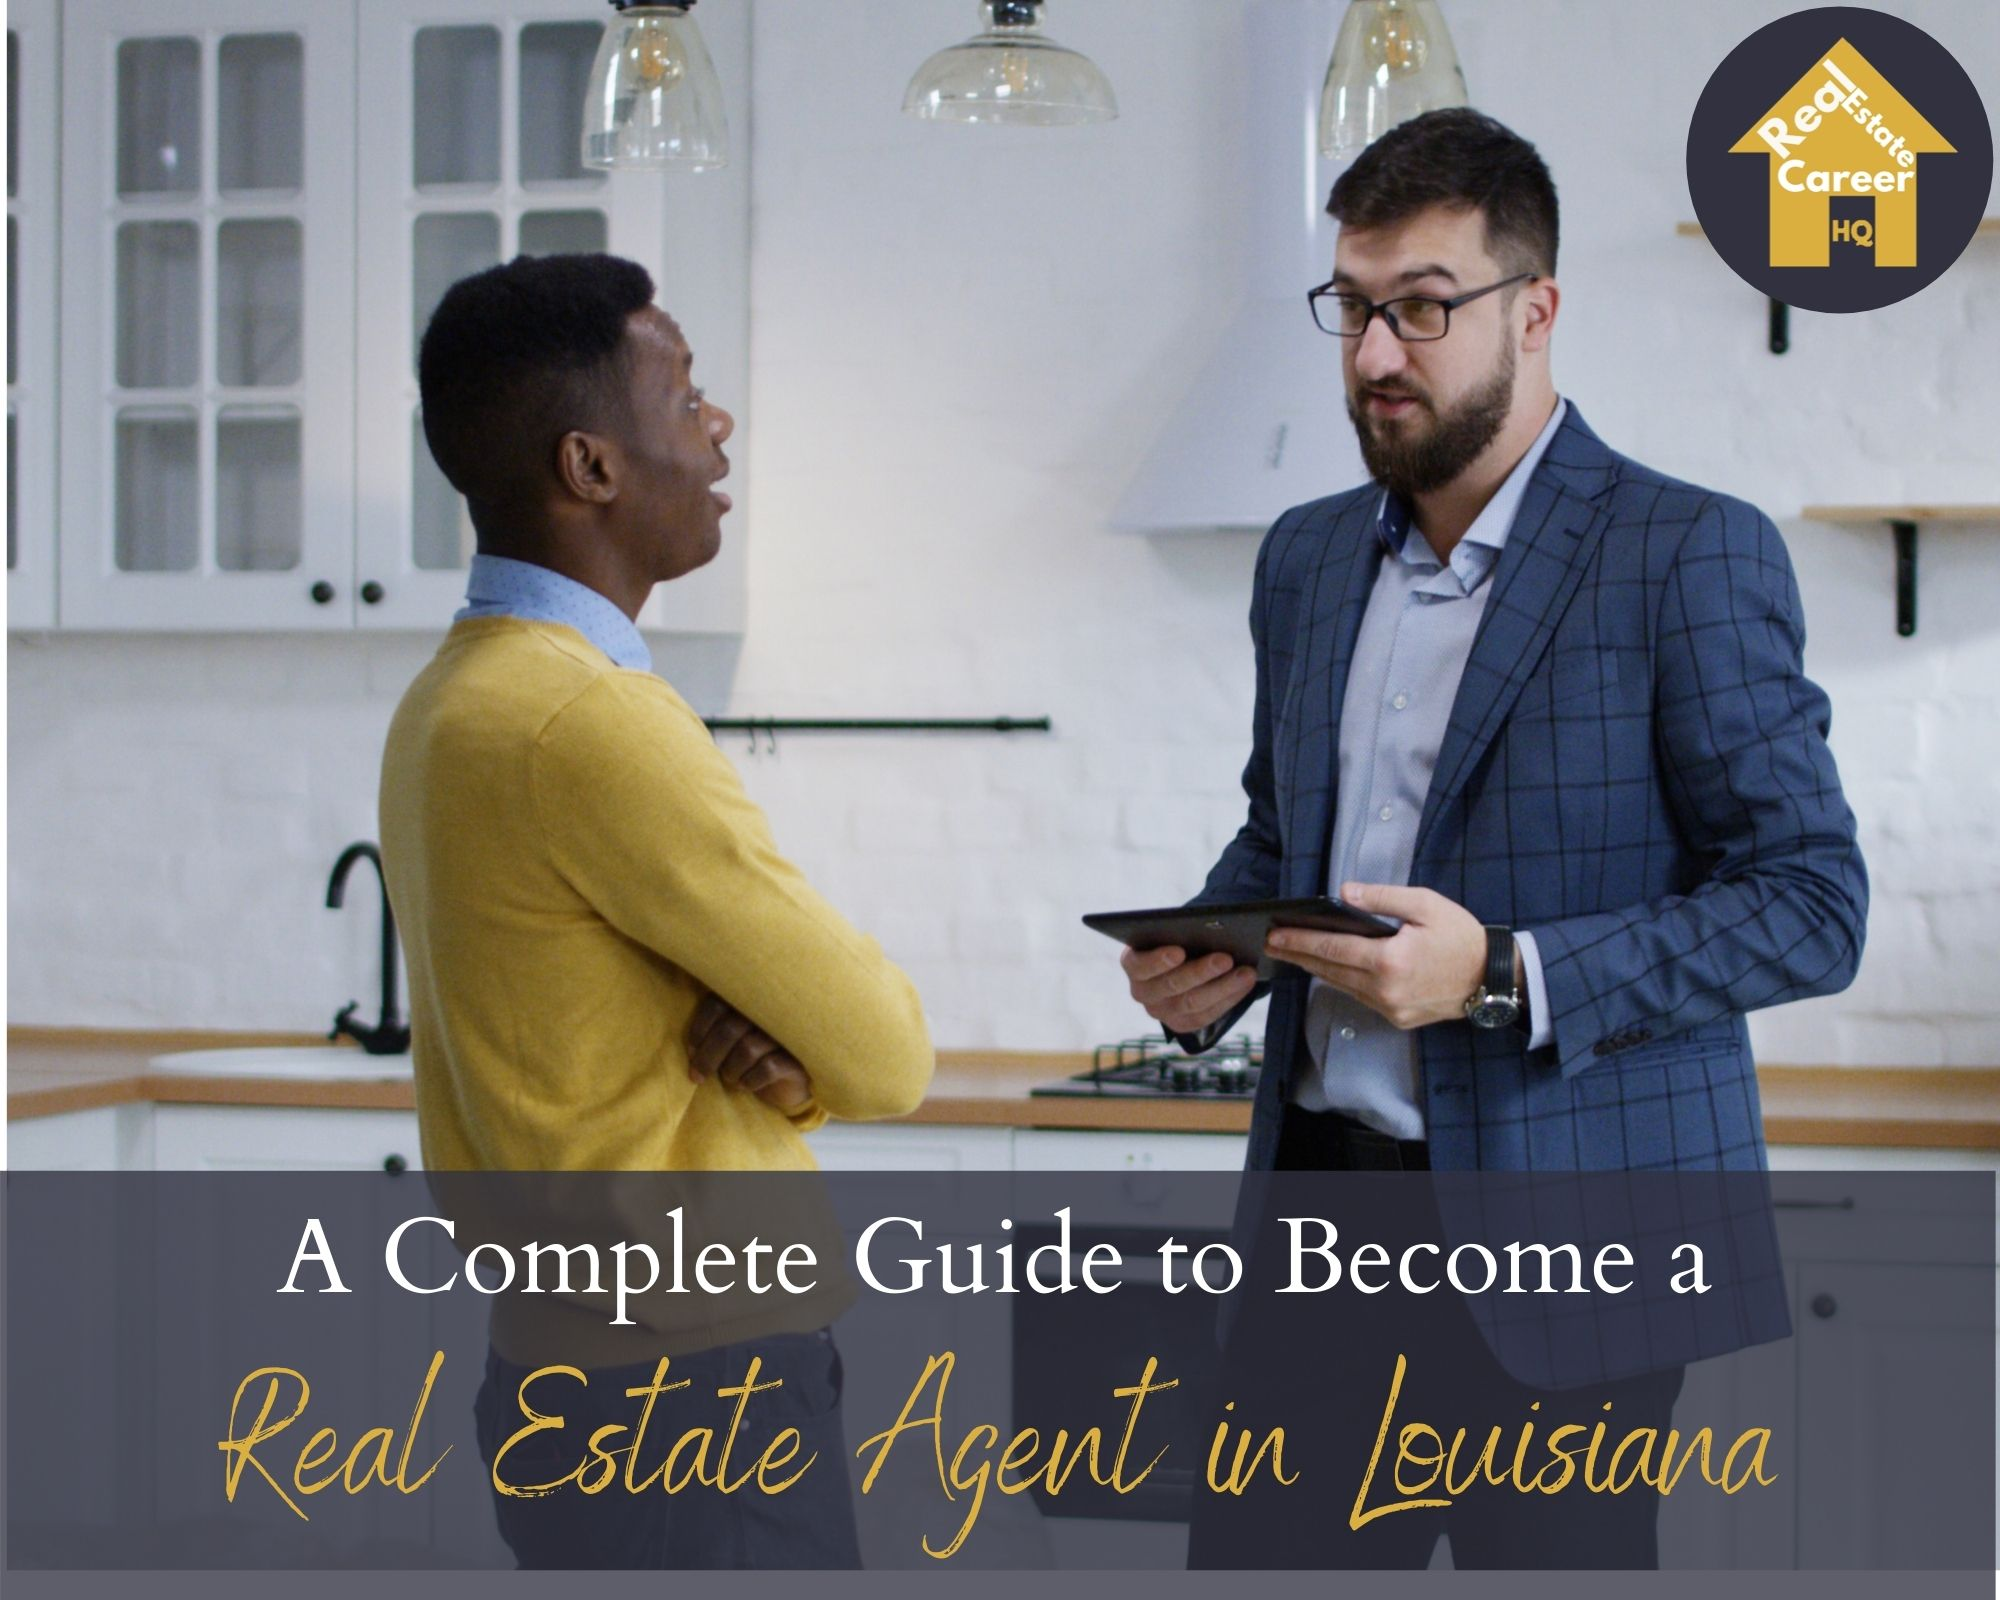 Complete guide to Become a Real Estate Agent in Louisiana